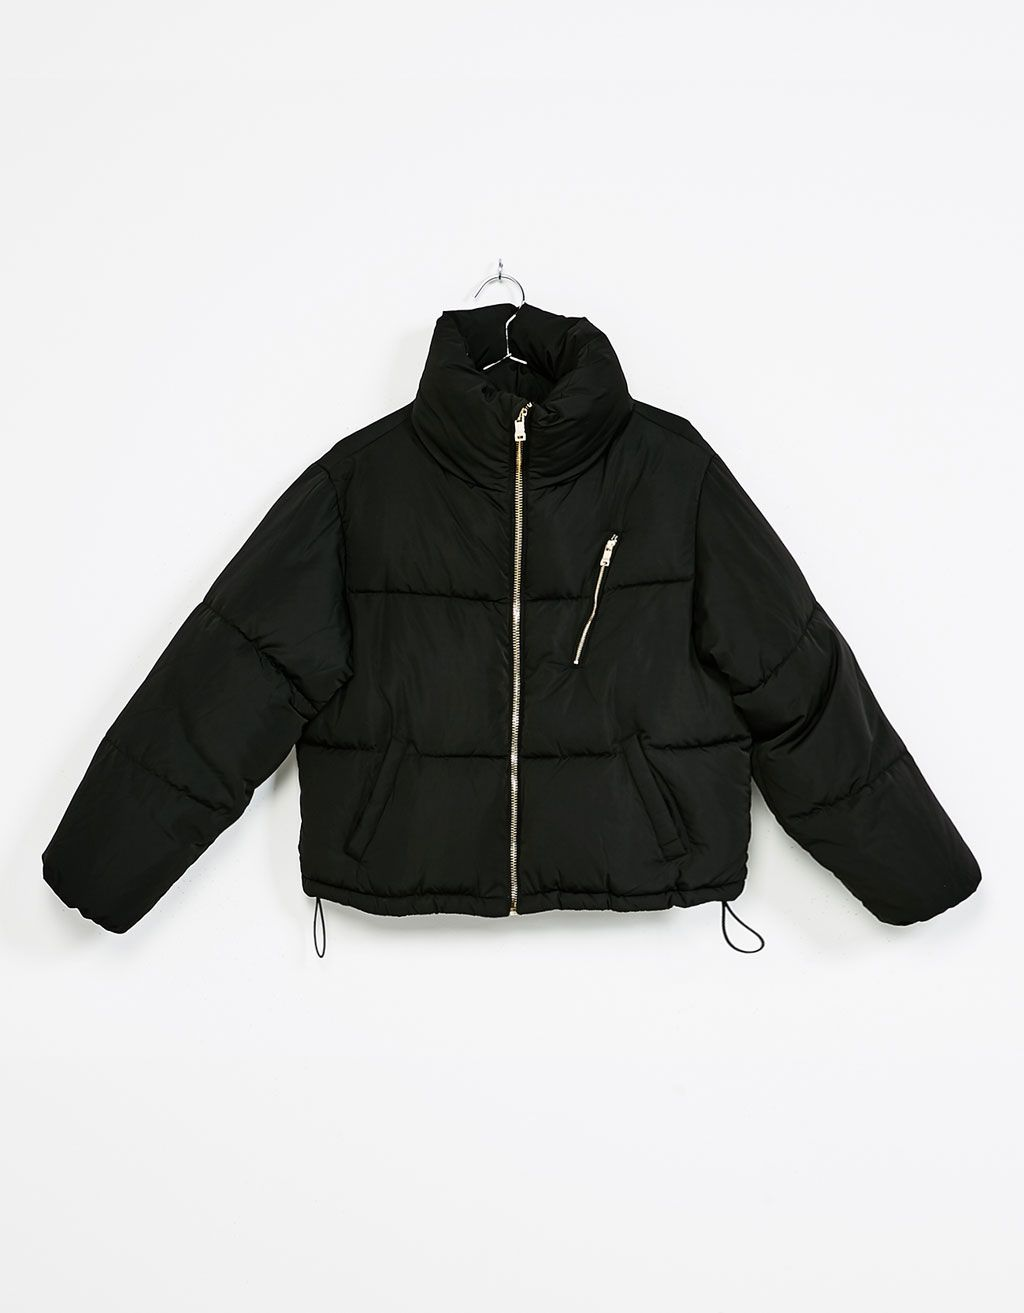 Puffy' cropped quilted jacket - Coats and jackets - Bershka Sweden ... : quilted cropped jacket - Adamdwight.com